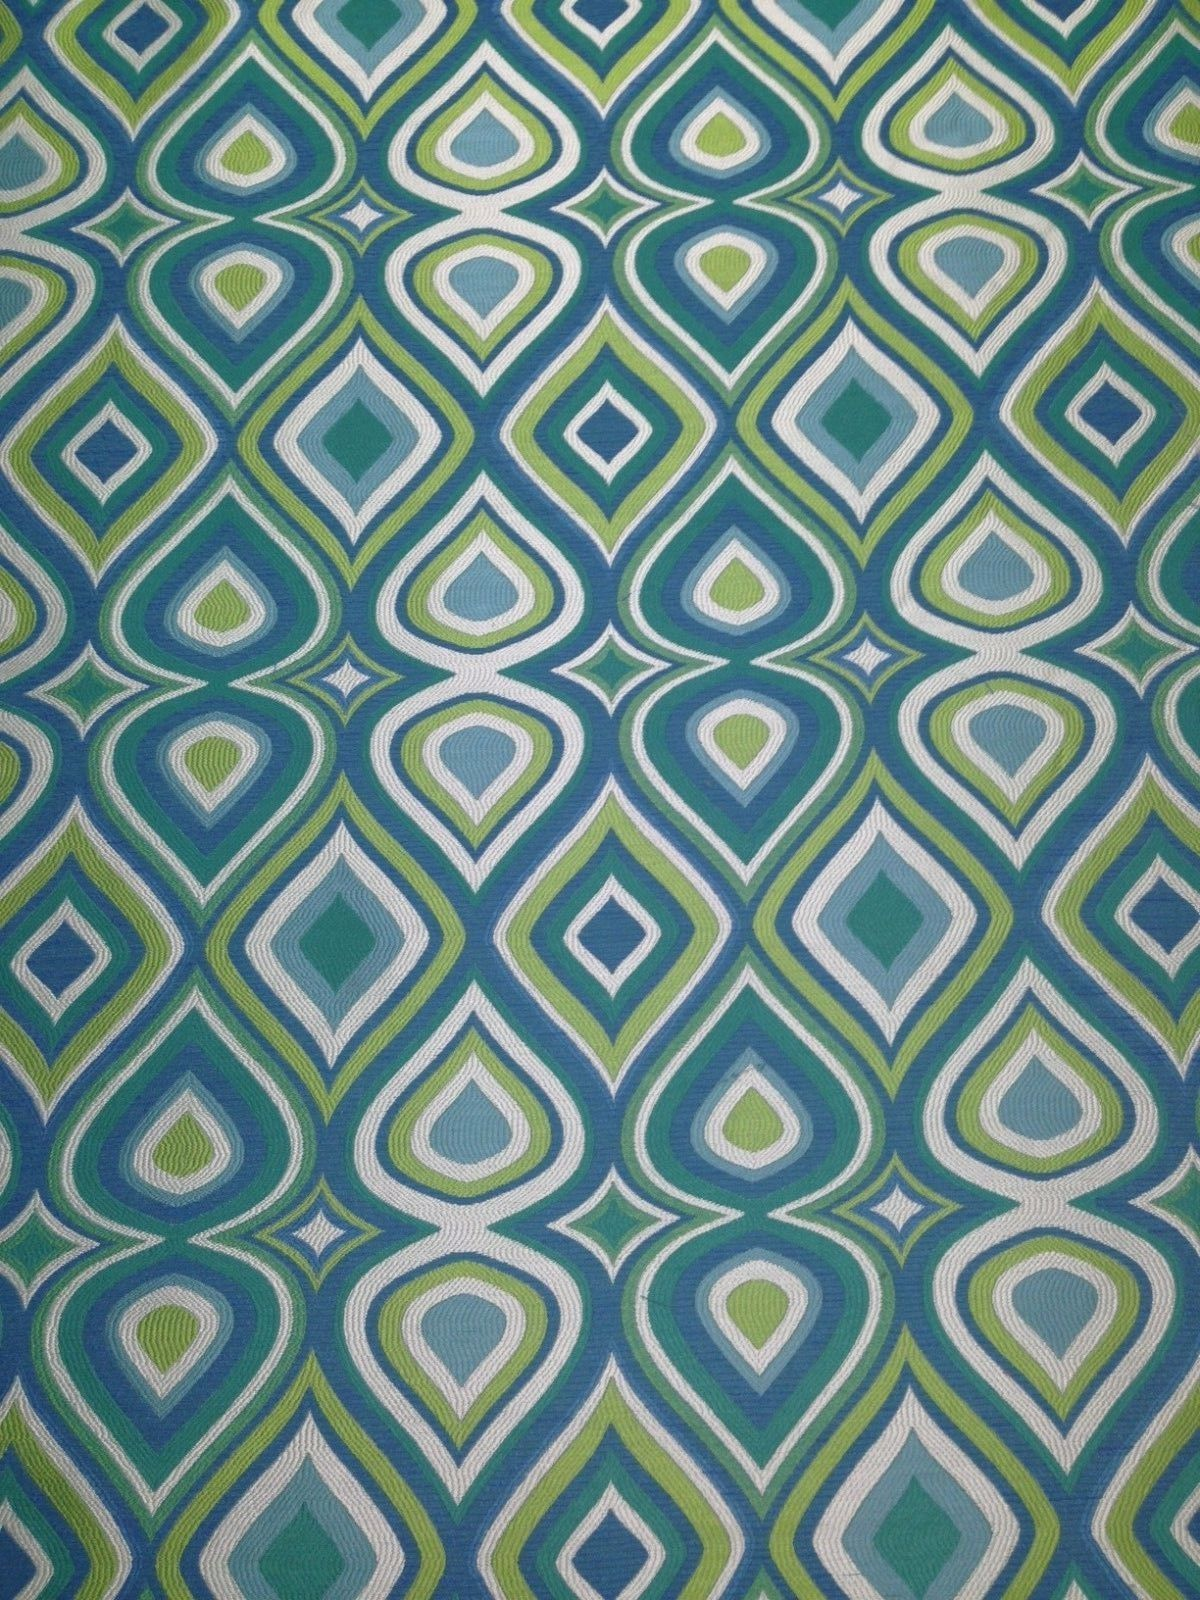 richloom doyle calypso green jacquard geometric upholstery fabric by